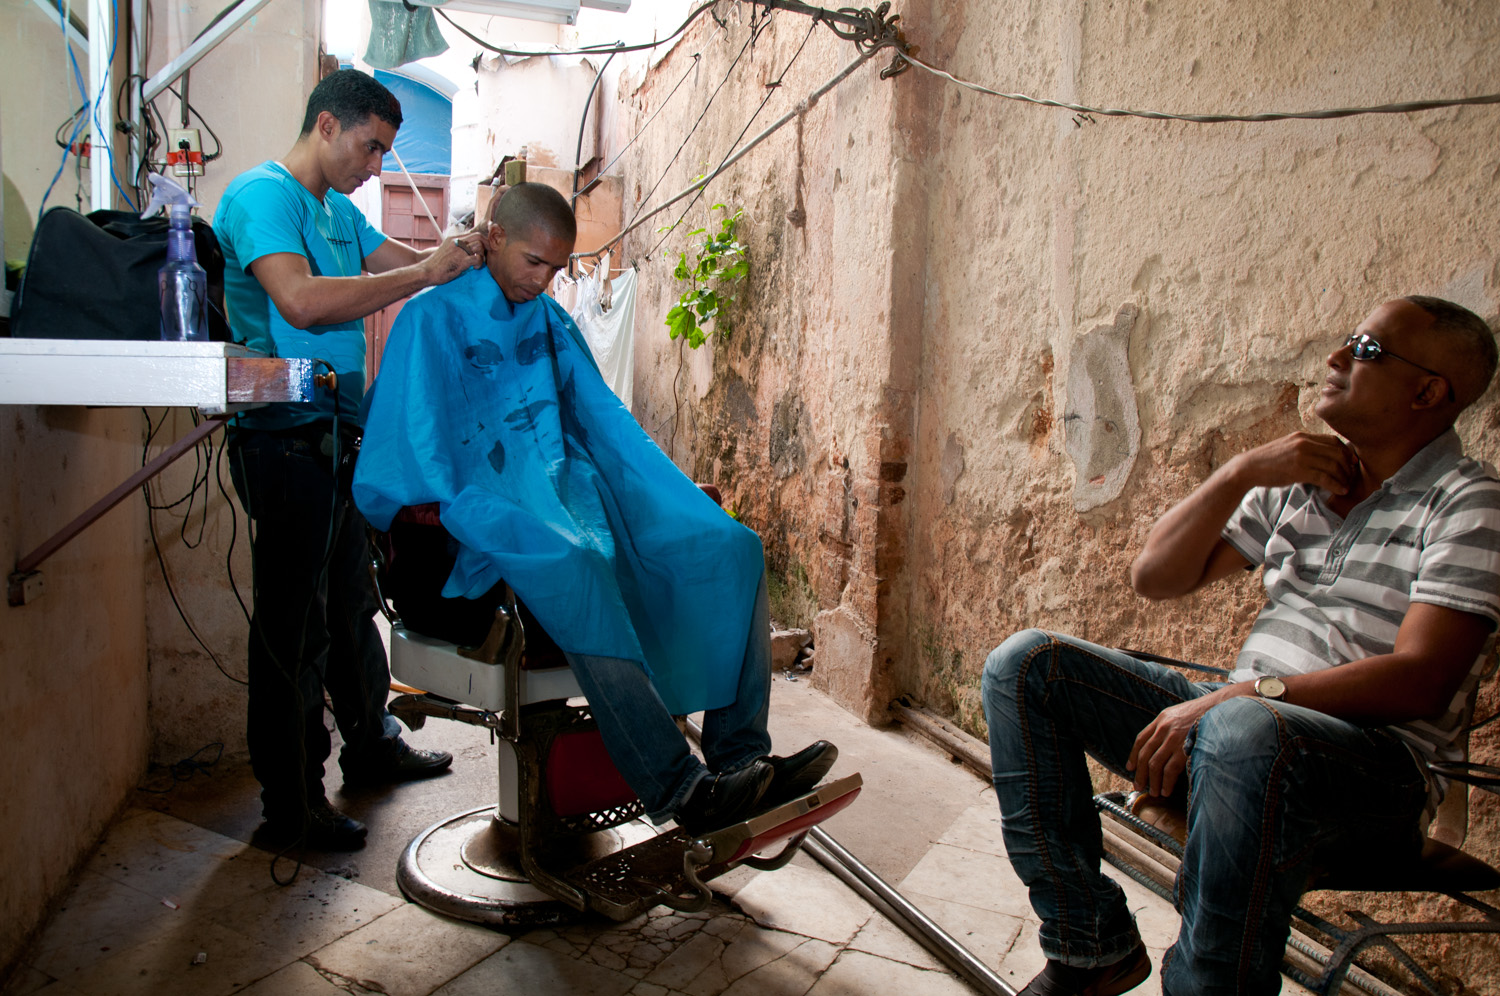 Alley way barber shop, Centro Habana